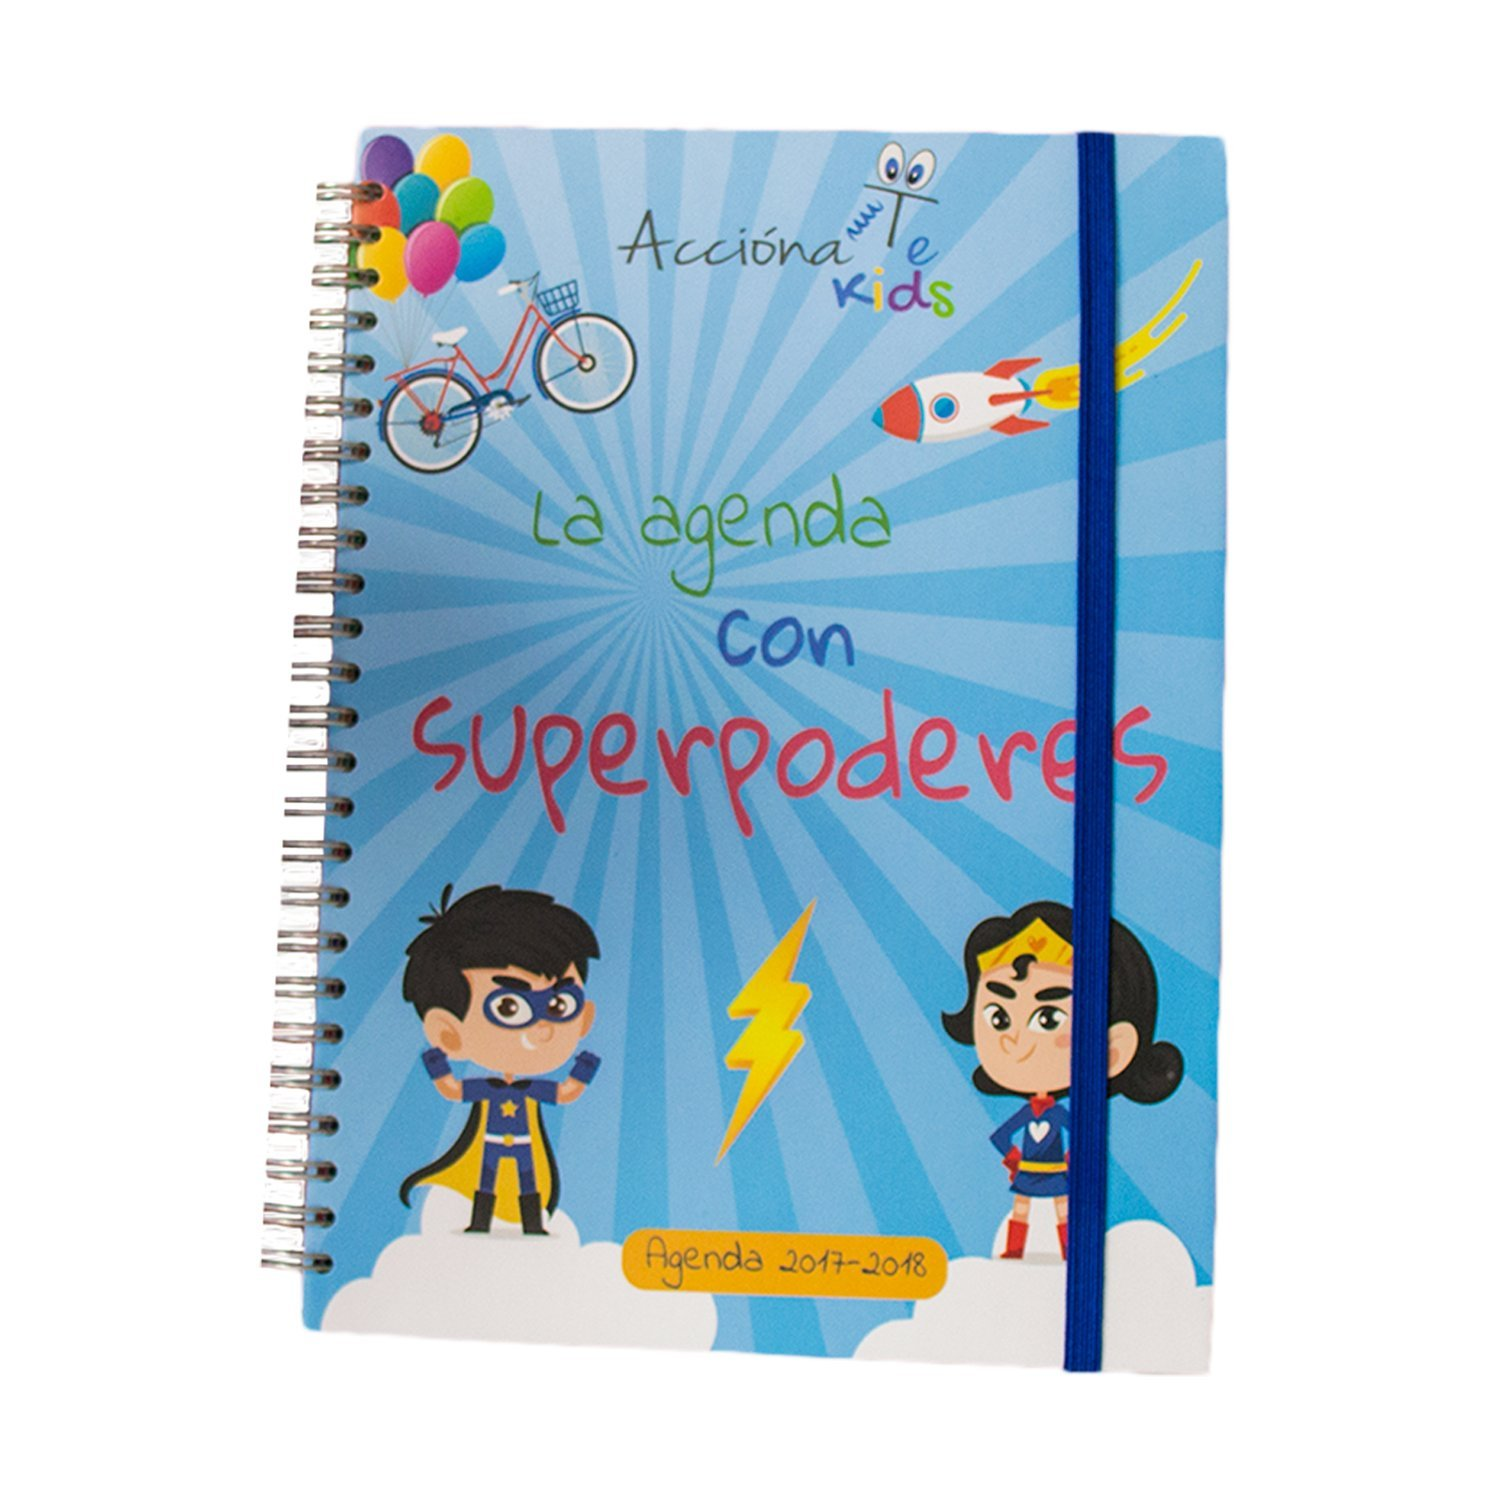 Agenda Escolar AcciónaTe Kids 2017-2018 semana vista: Amazon.es ...